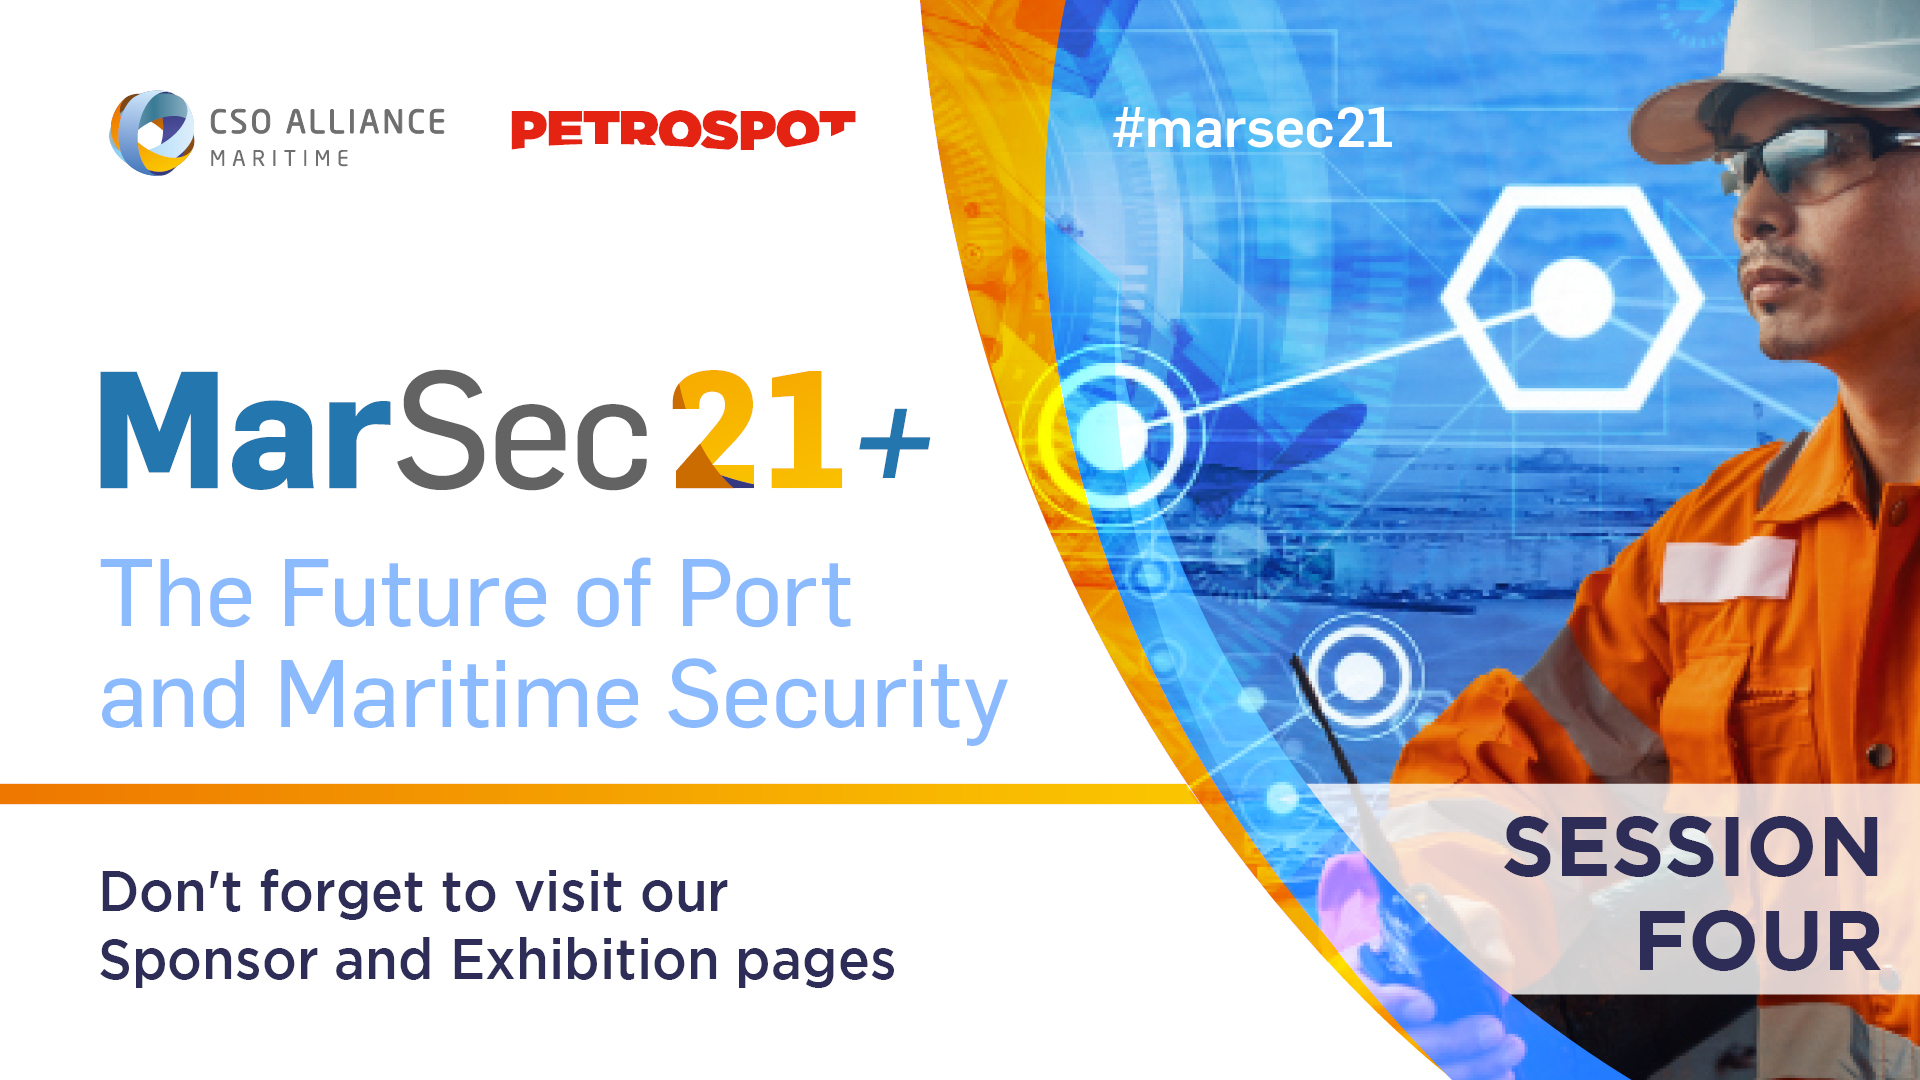 MarSec 21+ Session 4: Maritime Cybersecurity Legal, Consulting, and Technical Challenges